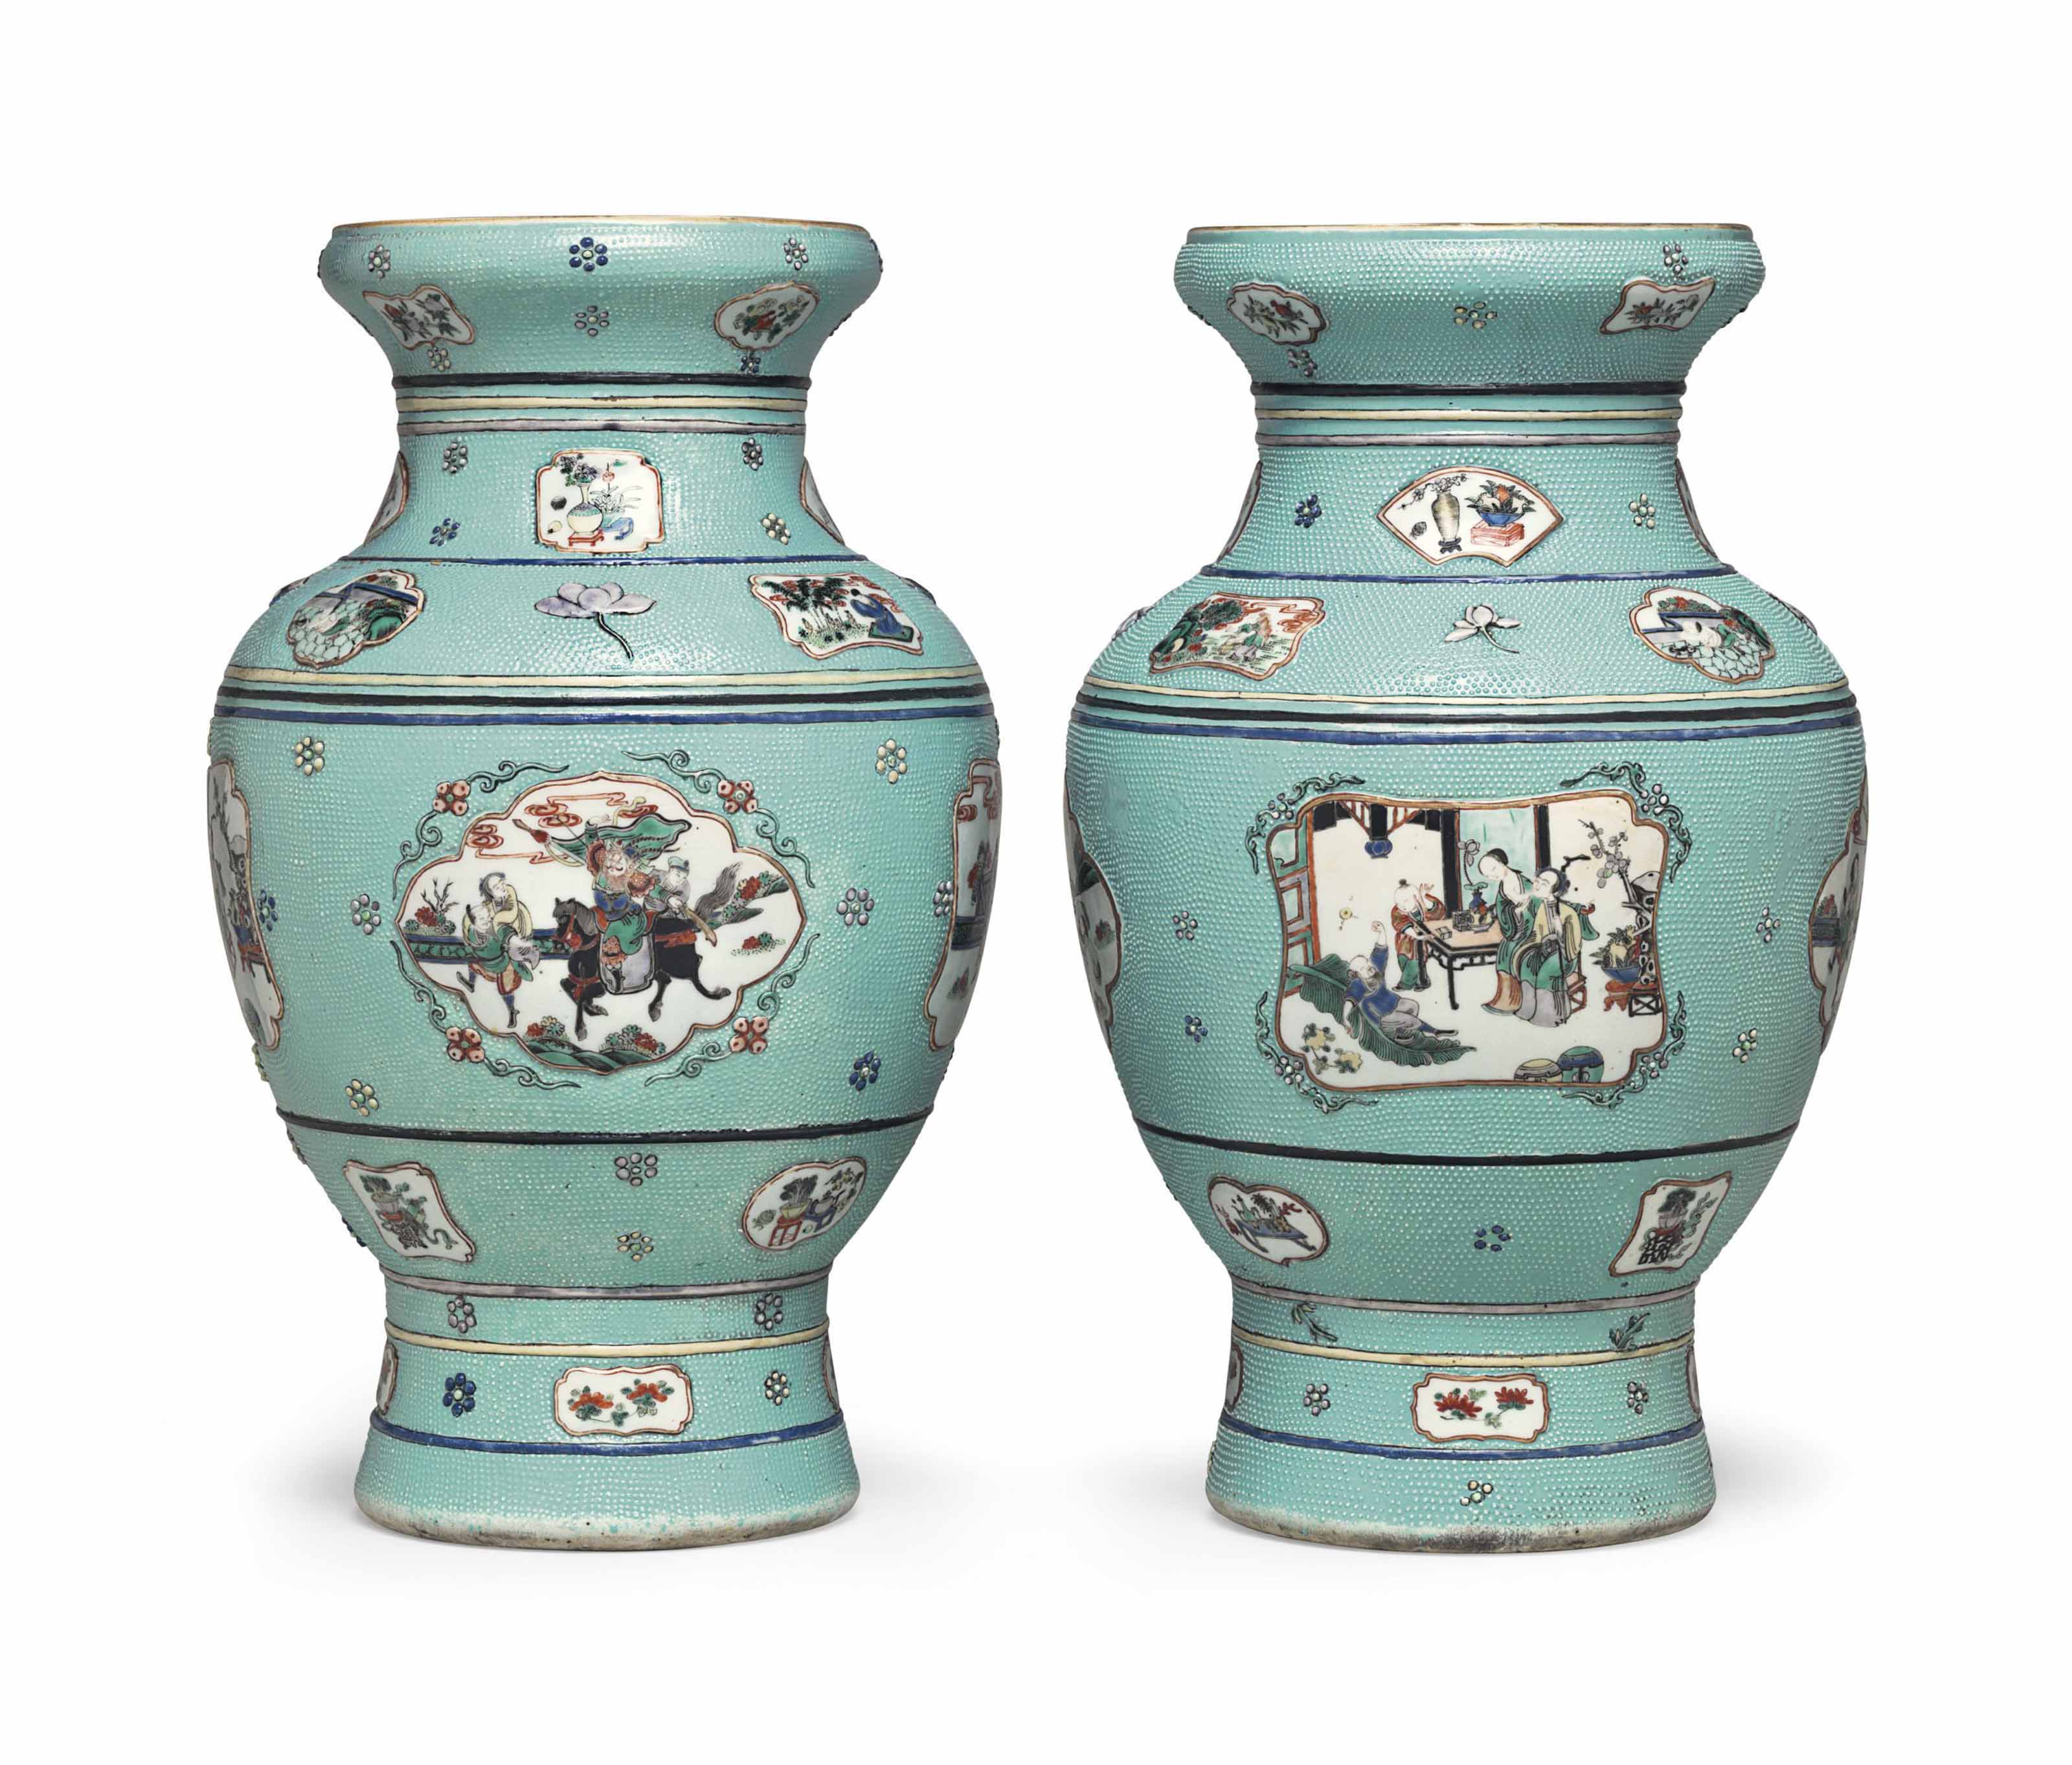 A PAIR OF LARGE CHINESE EXPORT TURQUOISE GROUND VASES